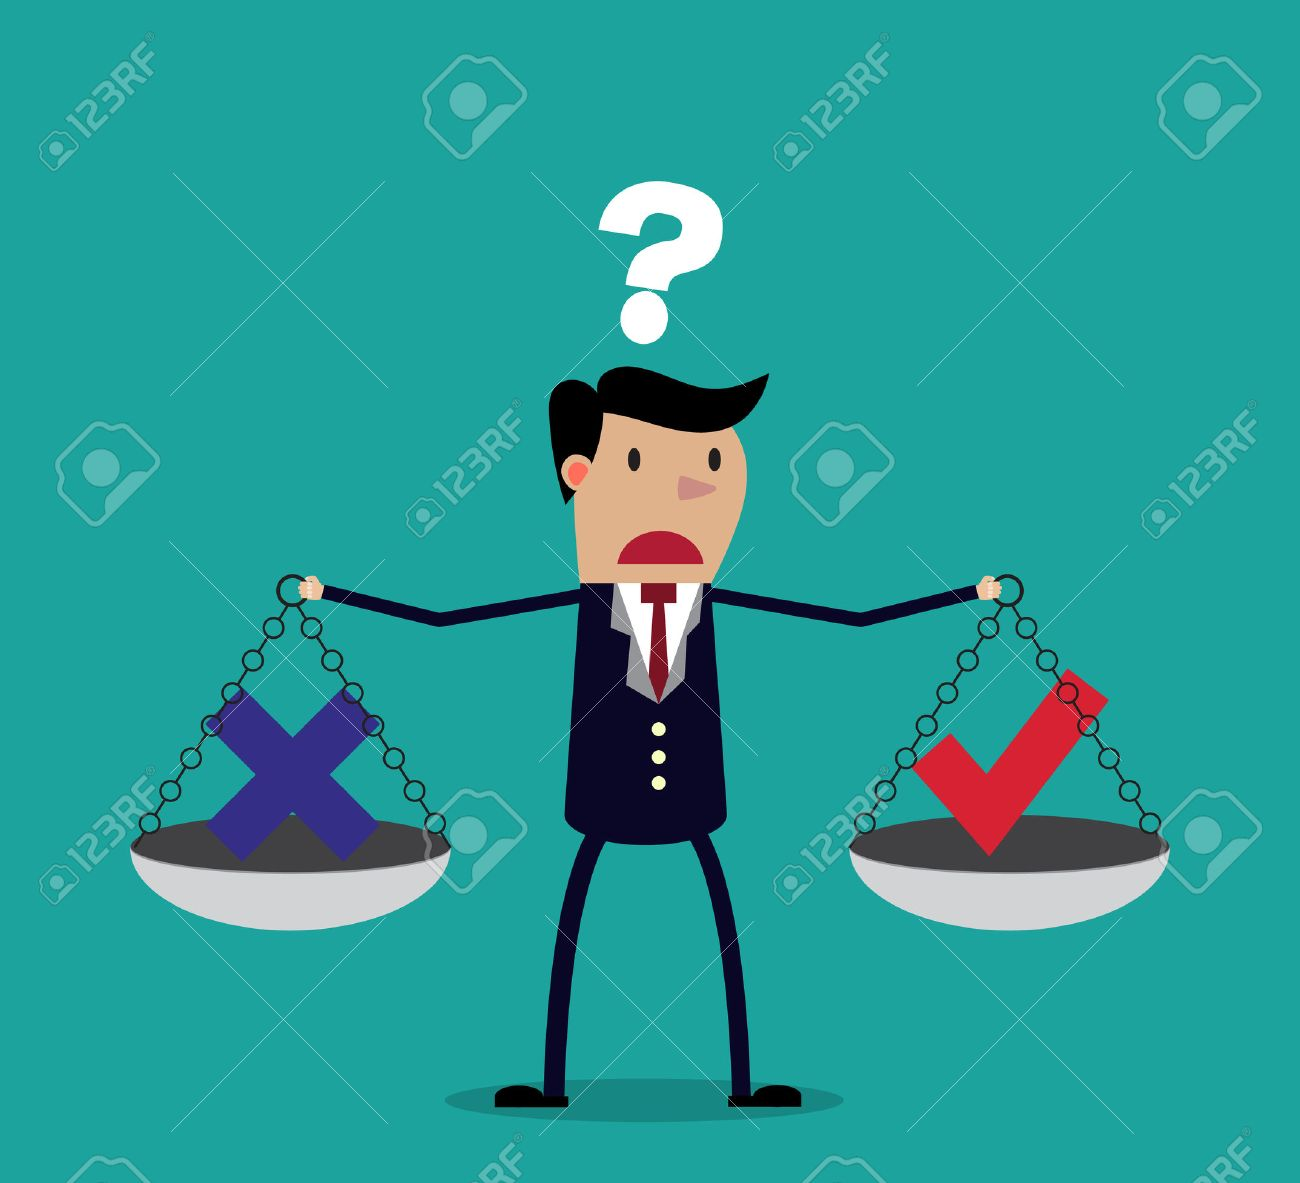 Cartoon businessman balancing cross and tick symbol on two weighing